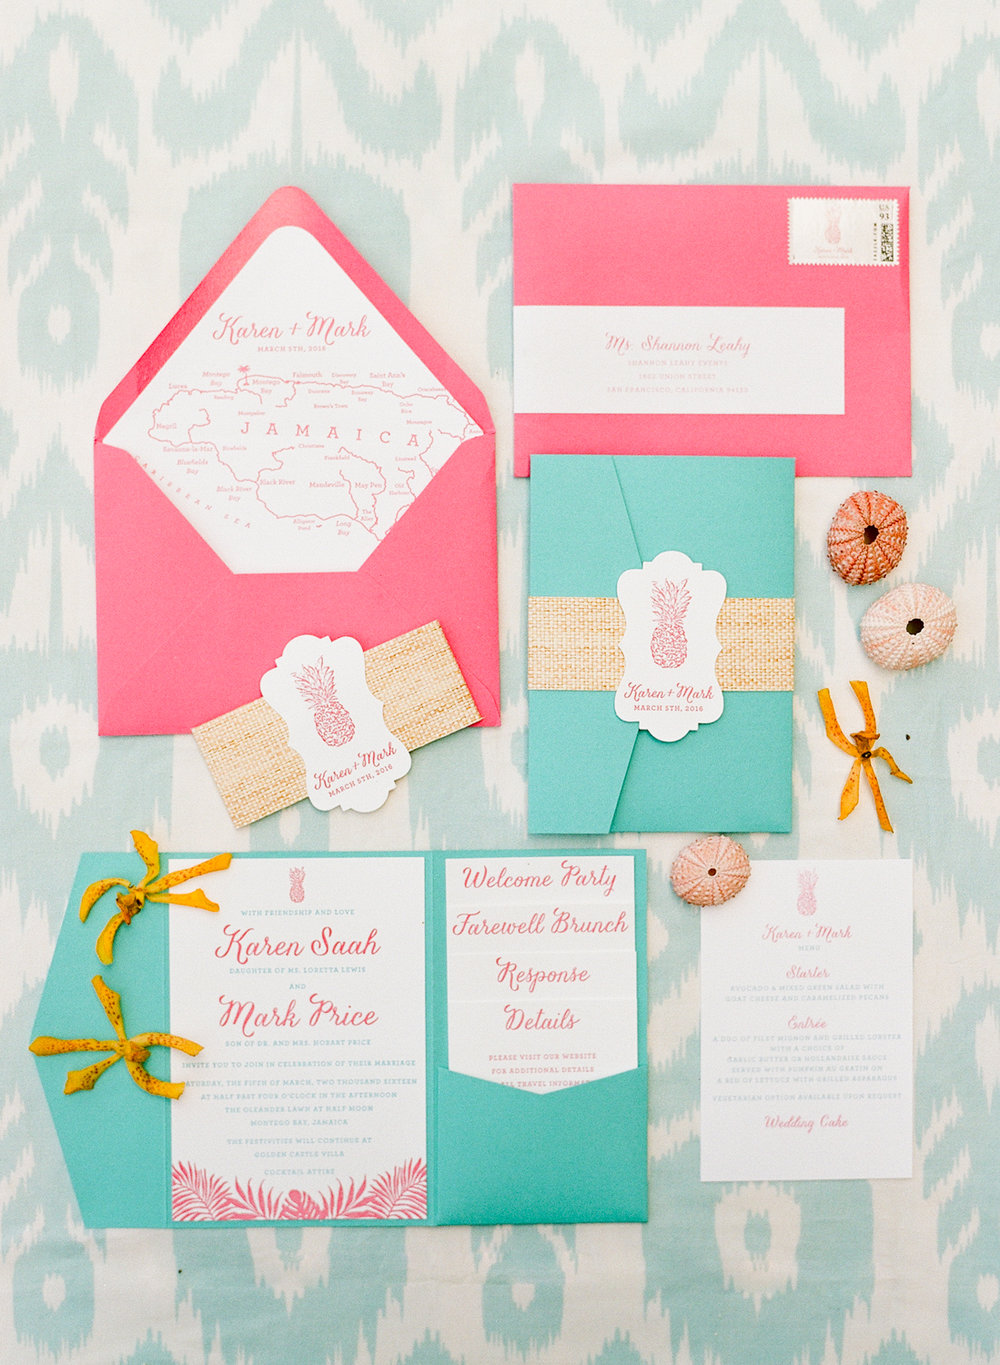 Bright pink and teal invitation suit with pineapple motif and seashell accents; Sylvie Gil Photography